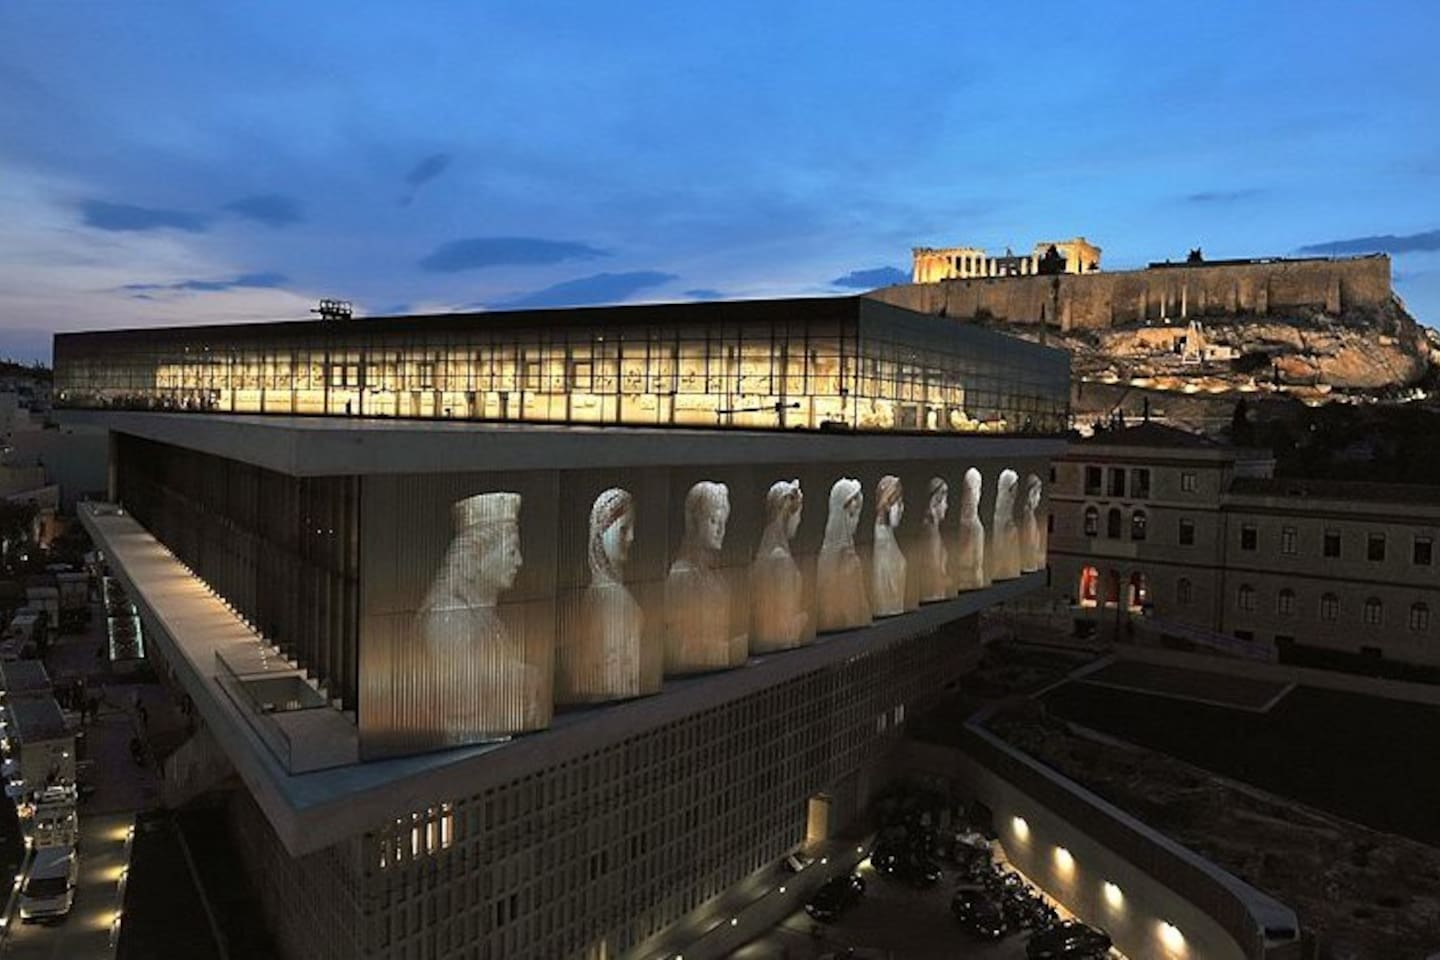 Acropolis and its museum are in 5 minutes walk distance.